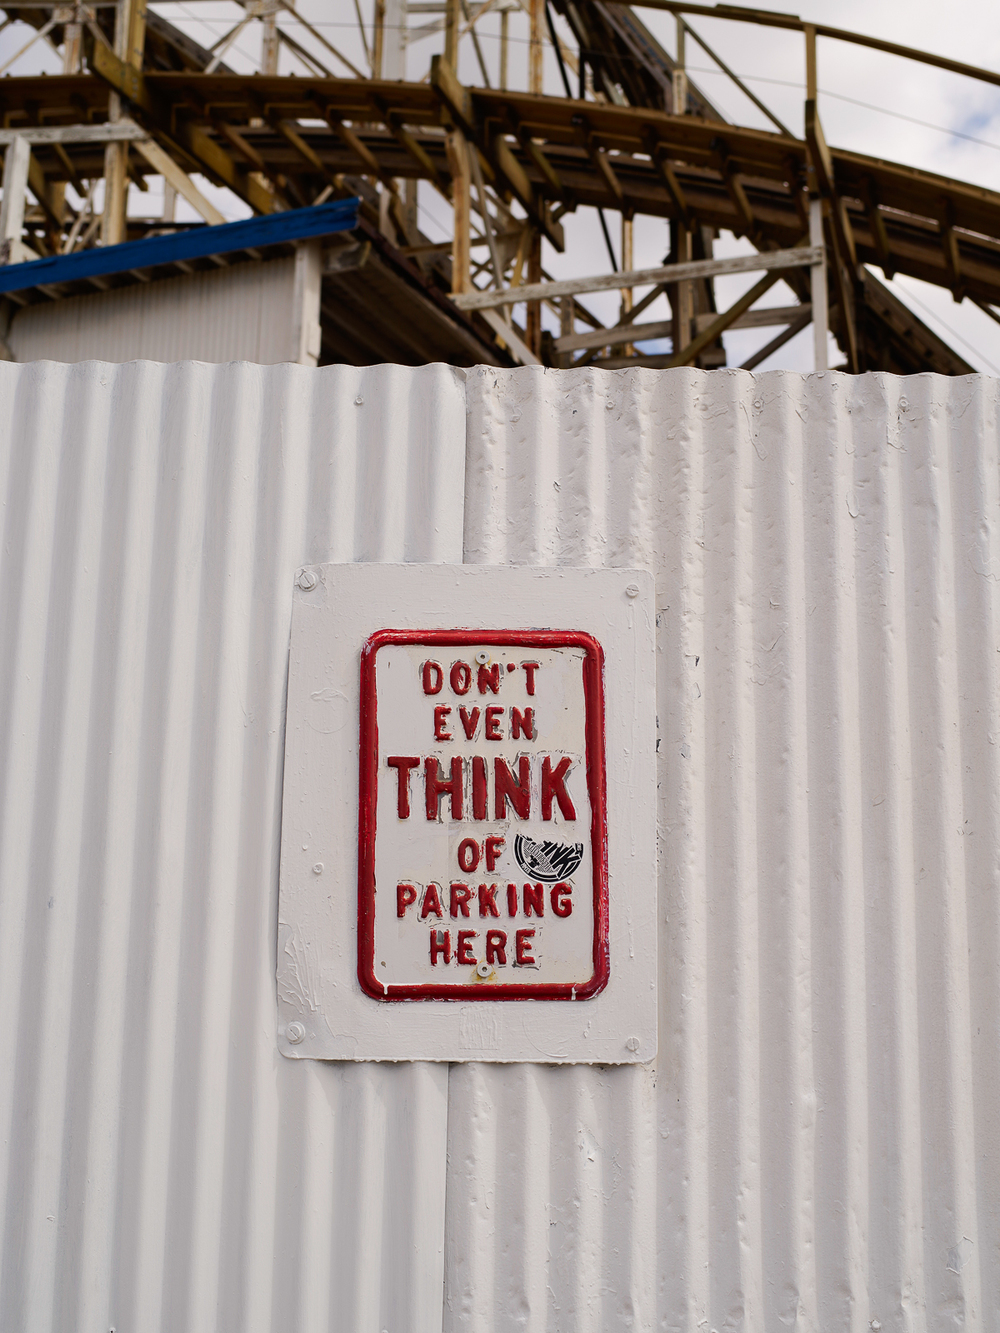 Photos from Luna Park, Coney Island, New York